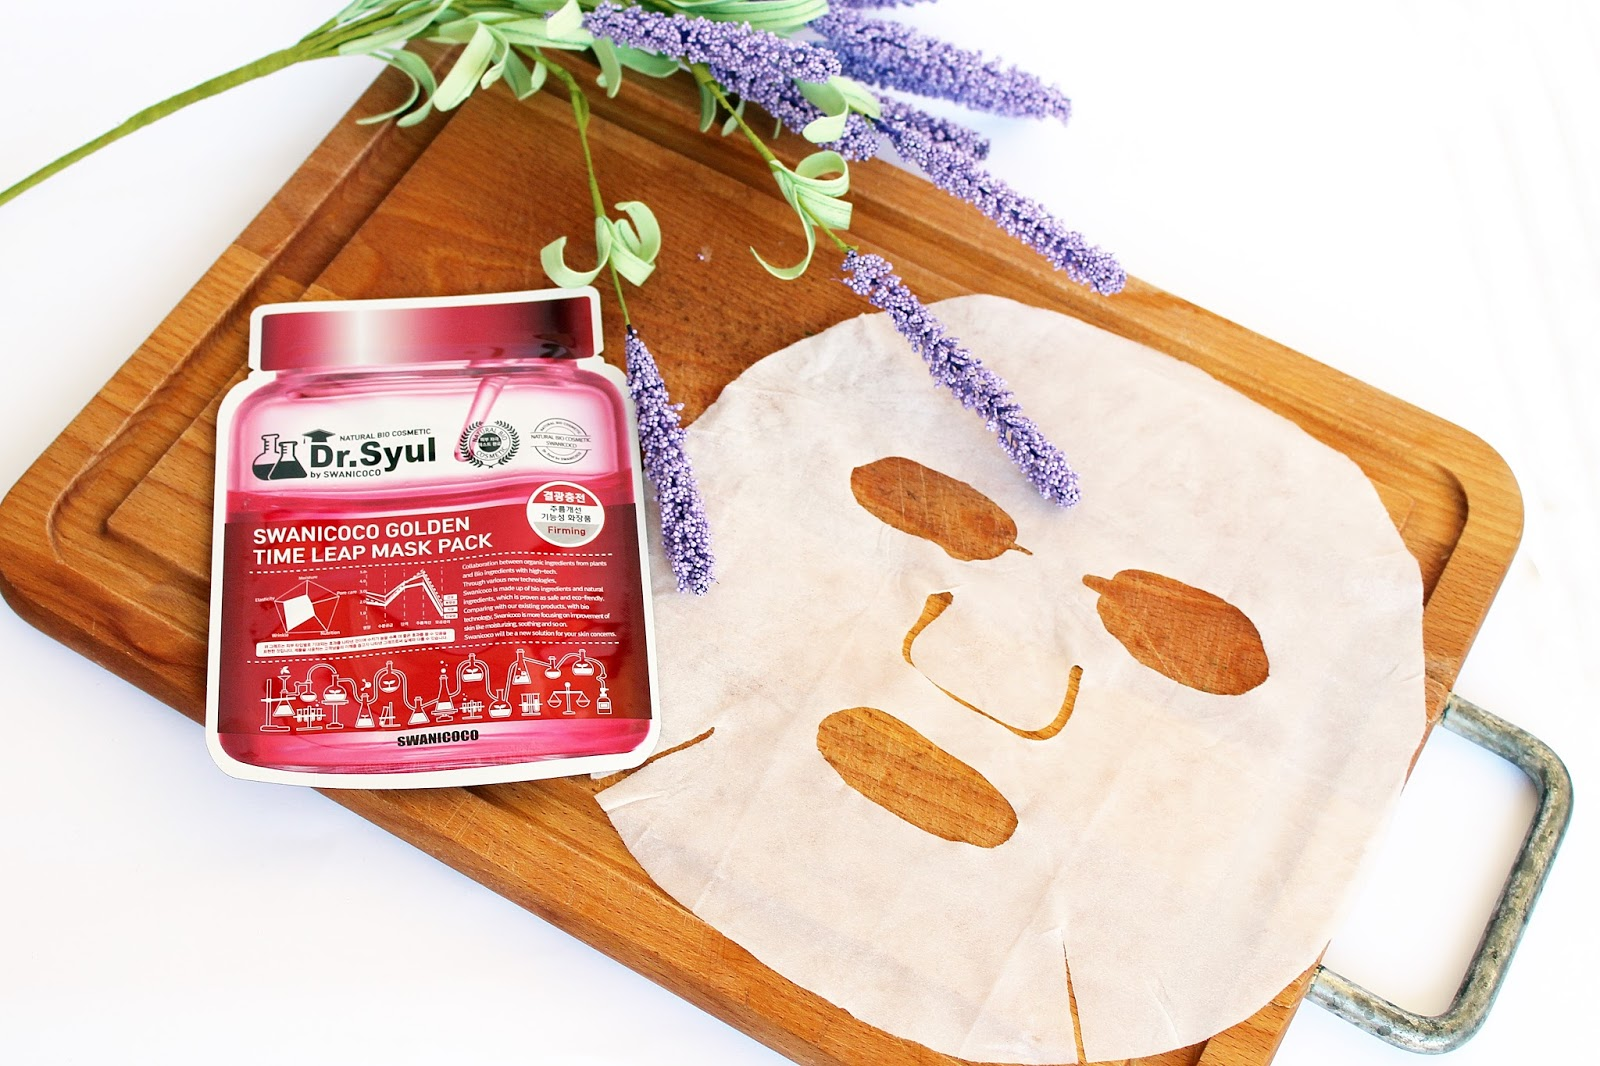 Dr. Syul by Swanicoco, Golden Time Leap Mask Pack